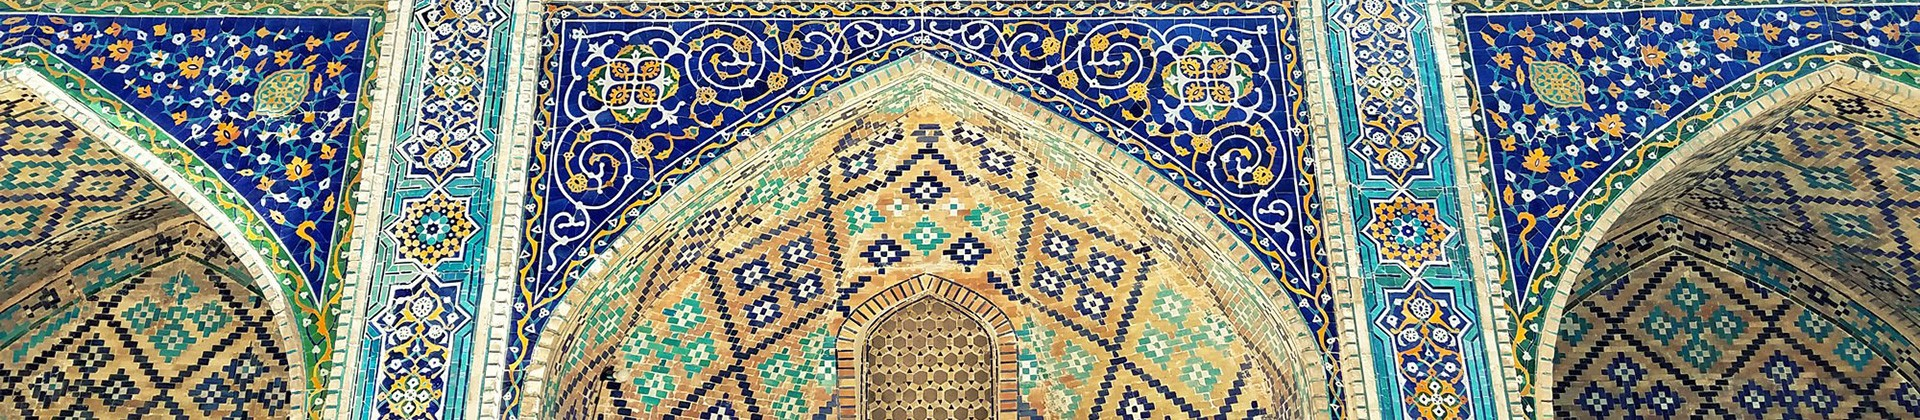 Journey through 4 countries of Central Asia in 11 days Group Tour - 1